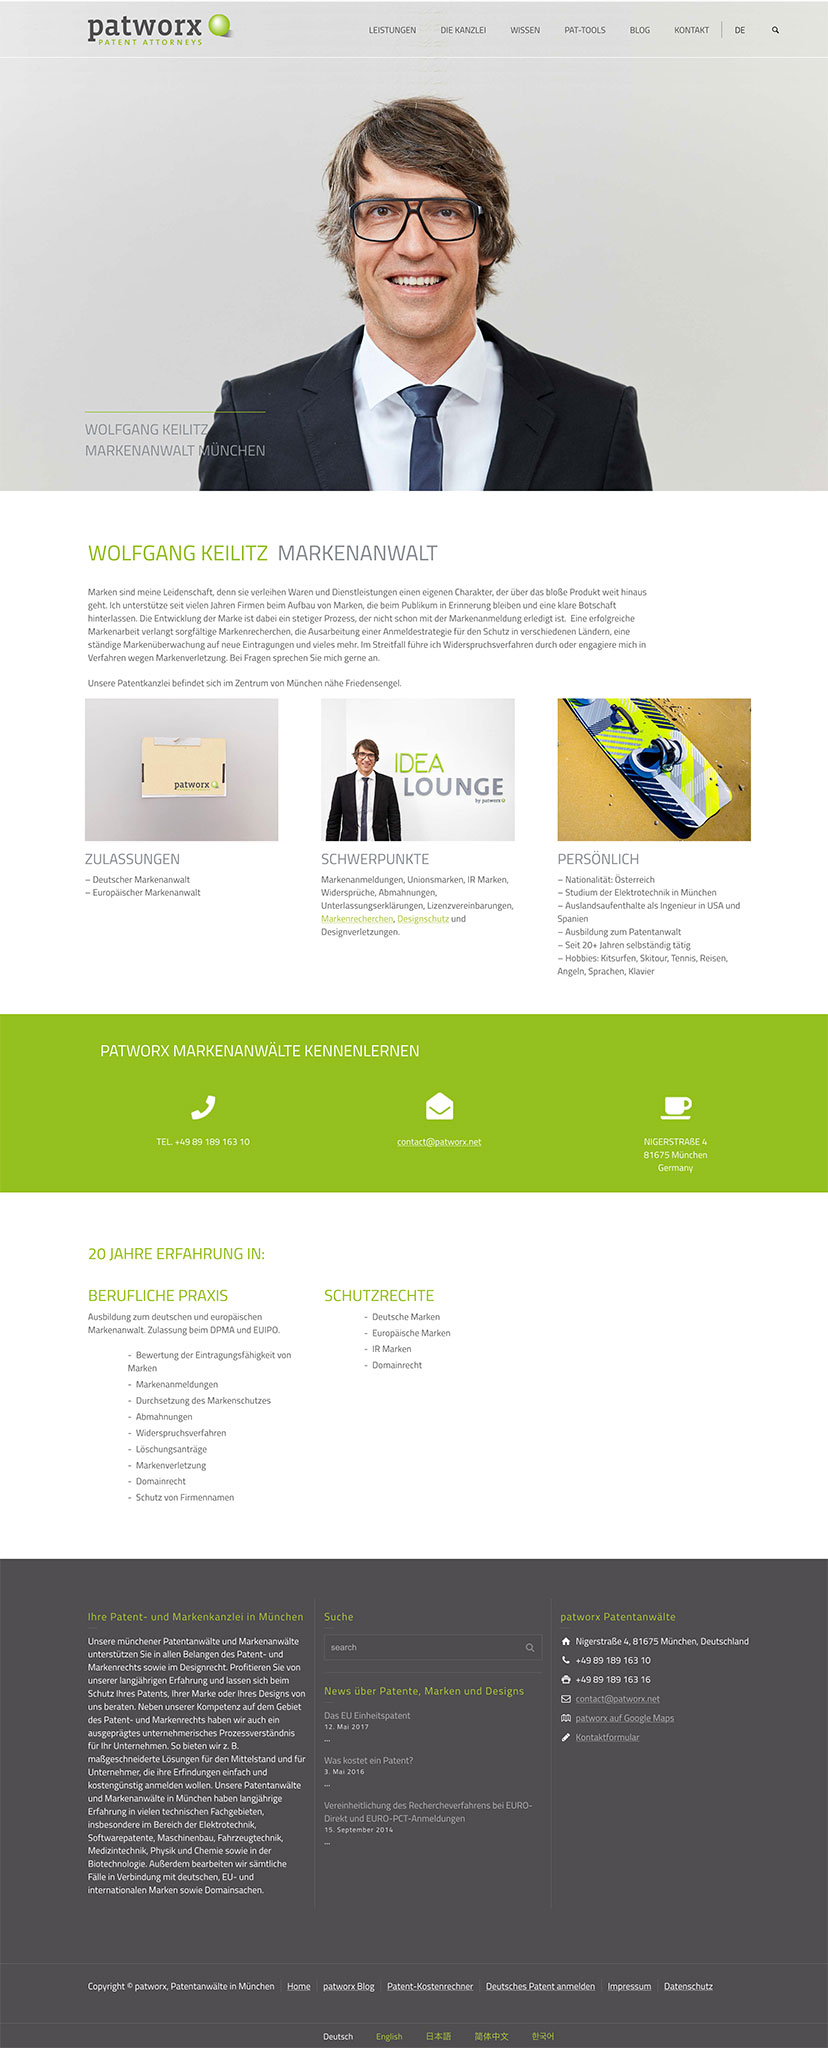 Webdesign Patentanwalt